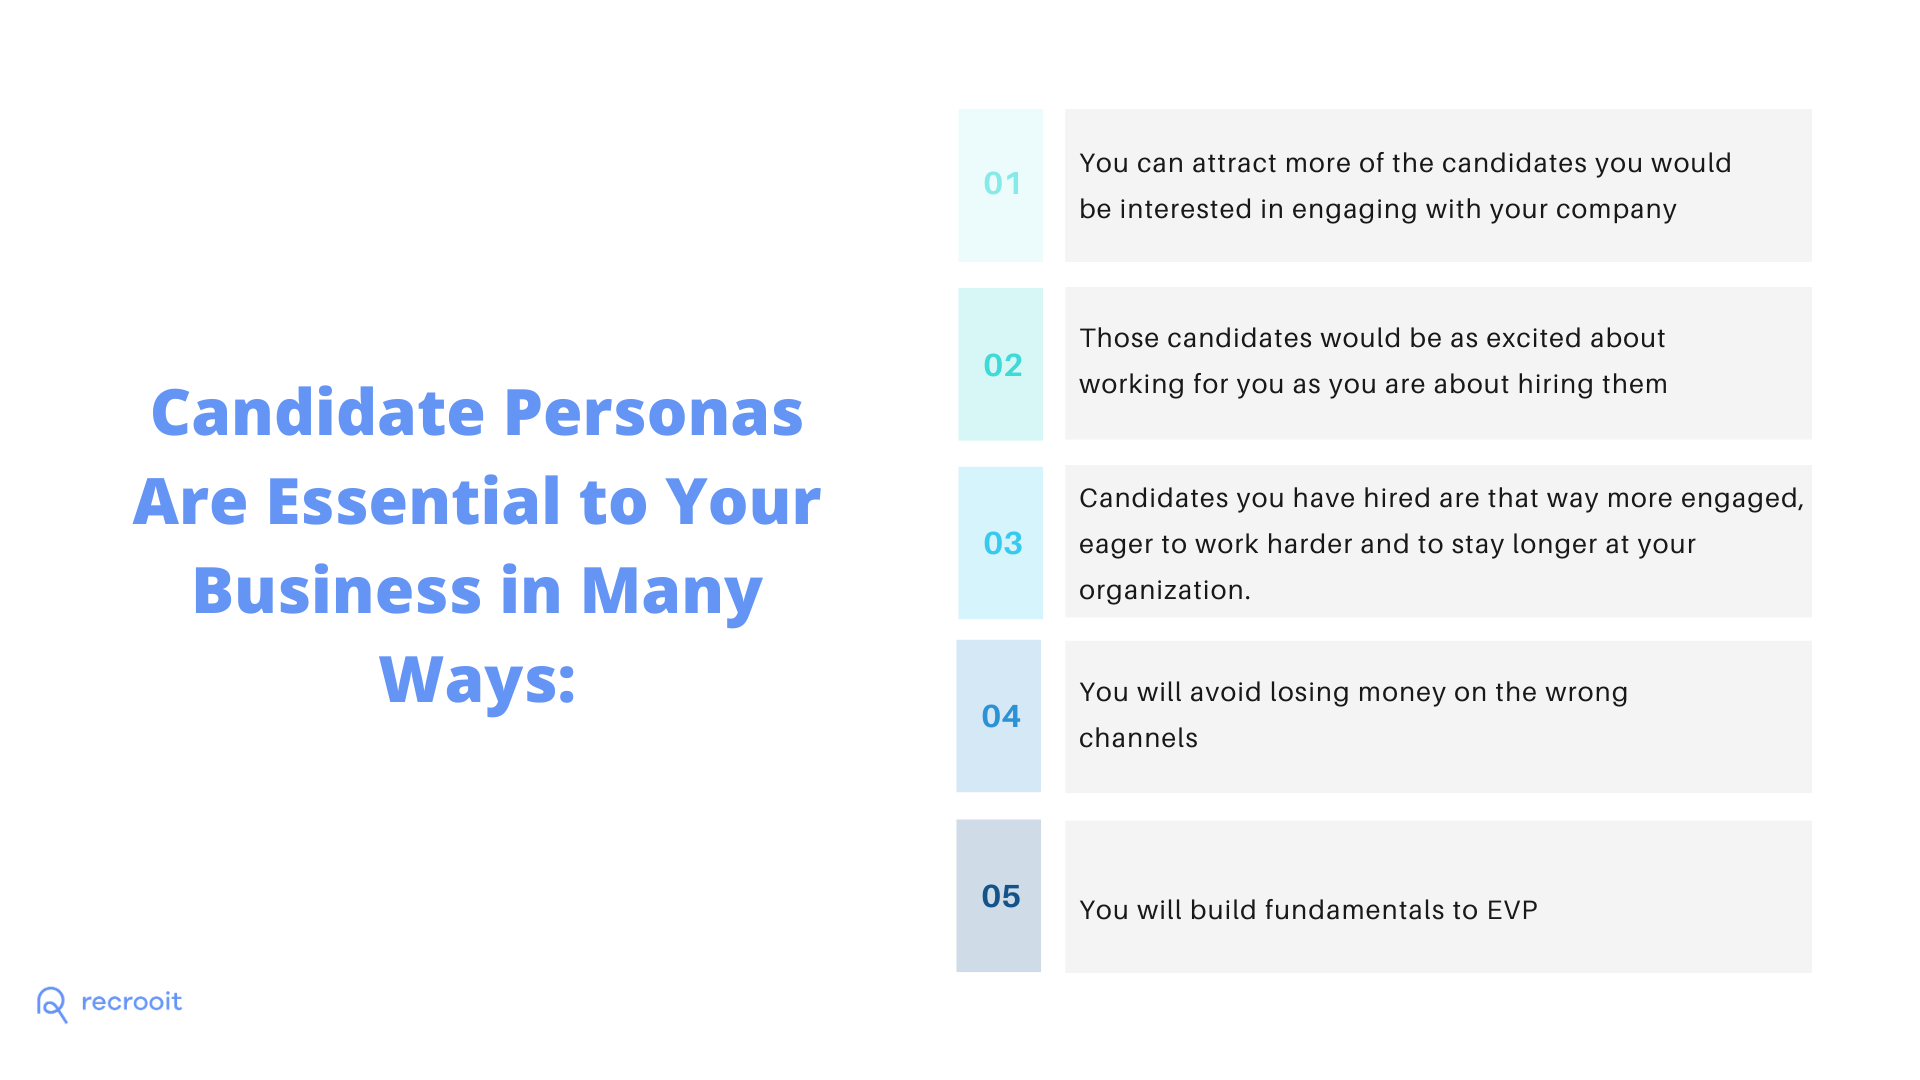 How Candidate Personas help recruitment and business